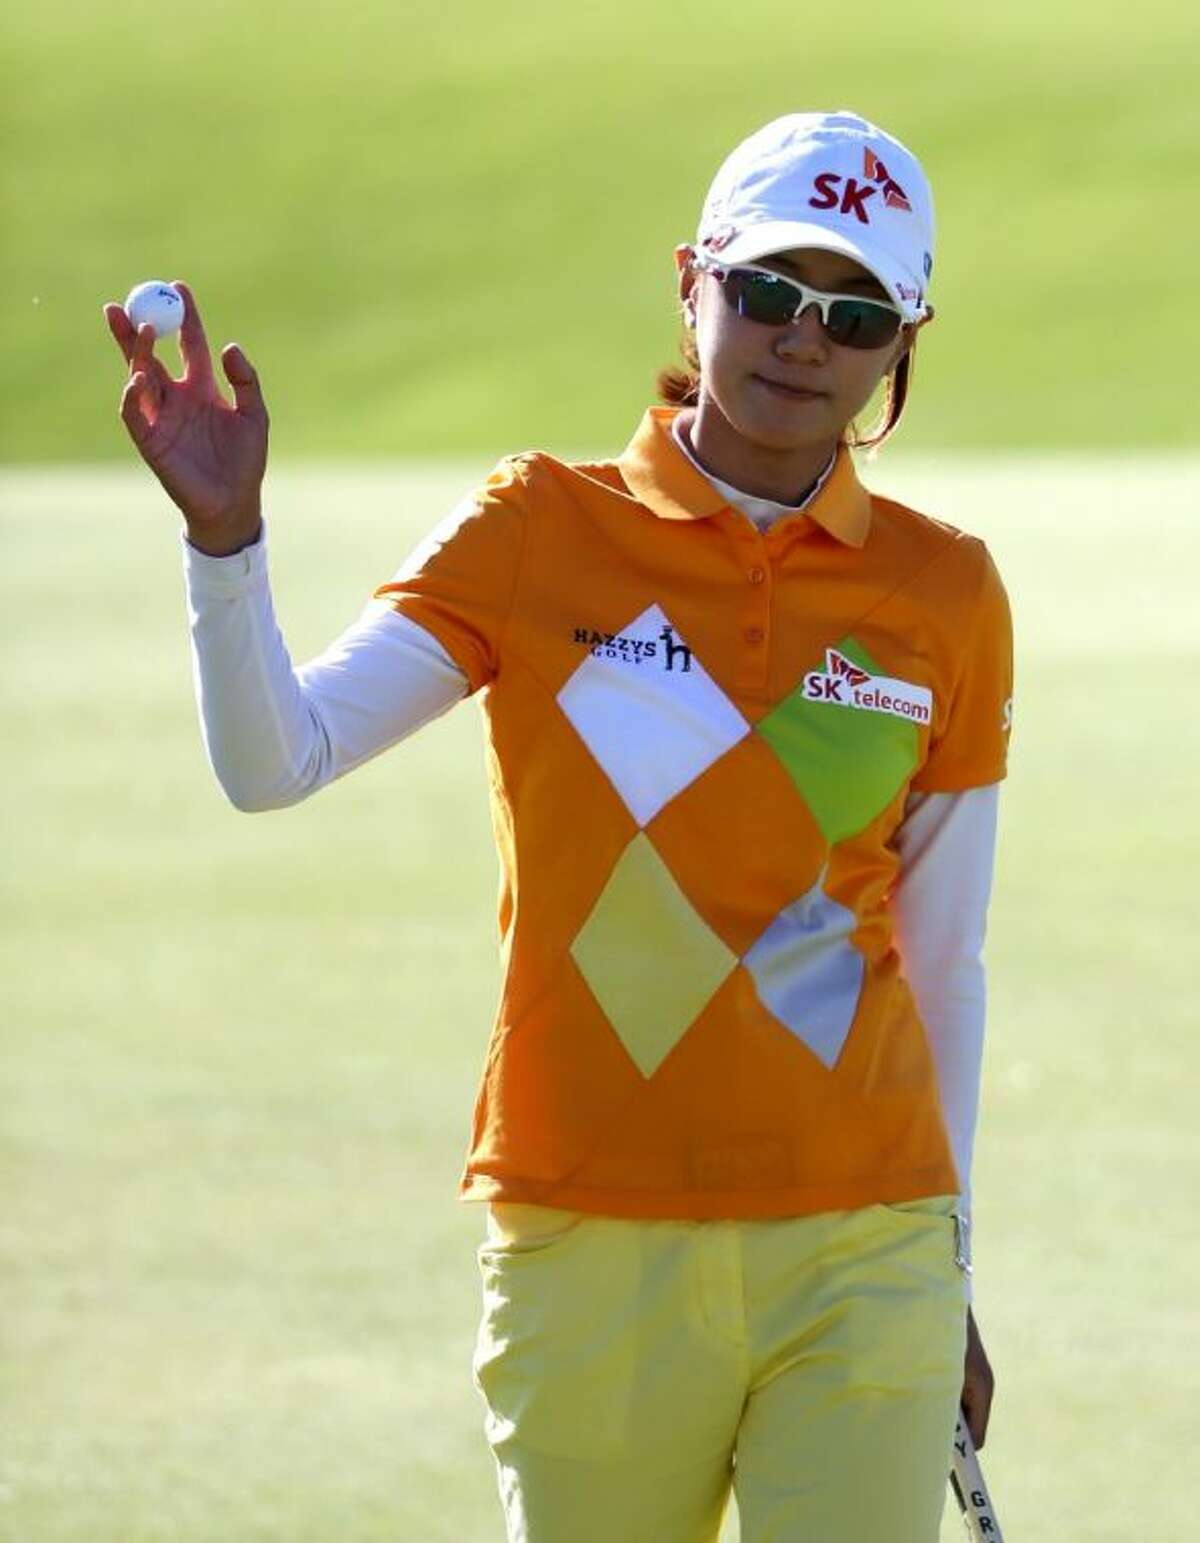 Korea's Na Yeon Choi walks off the 18th green during the second round of the Women's British Open on the Old Course in St. Andrews, Scotland.